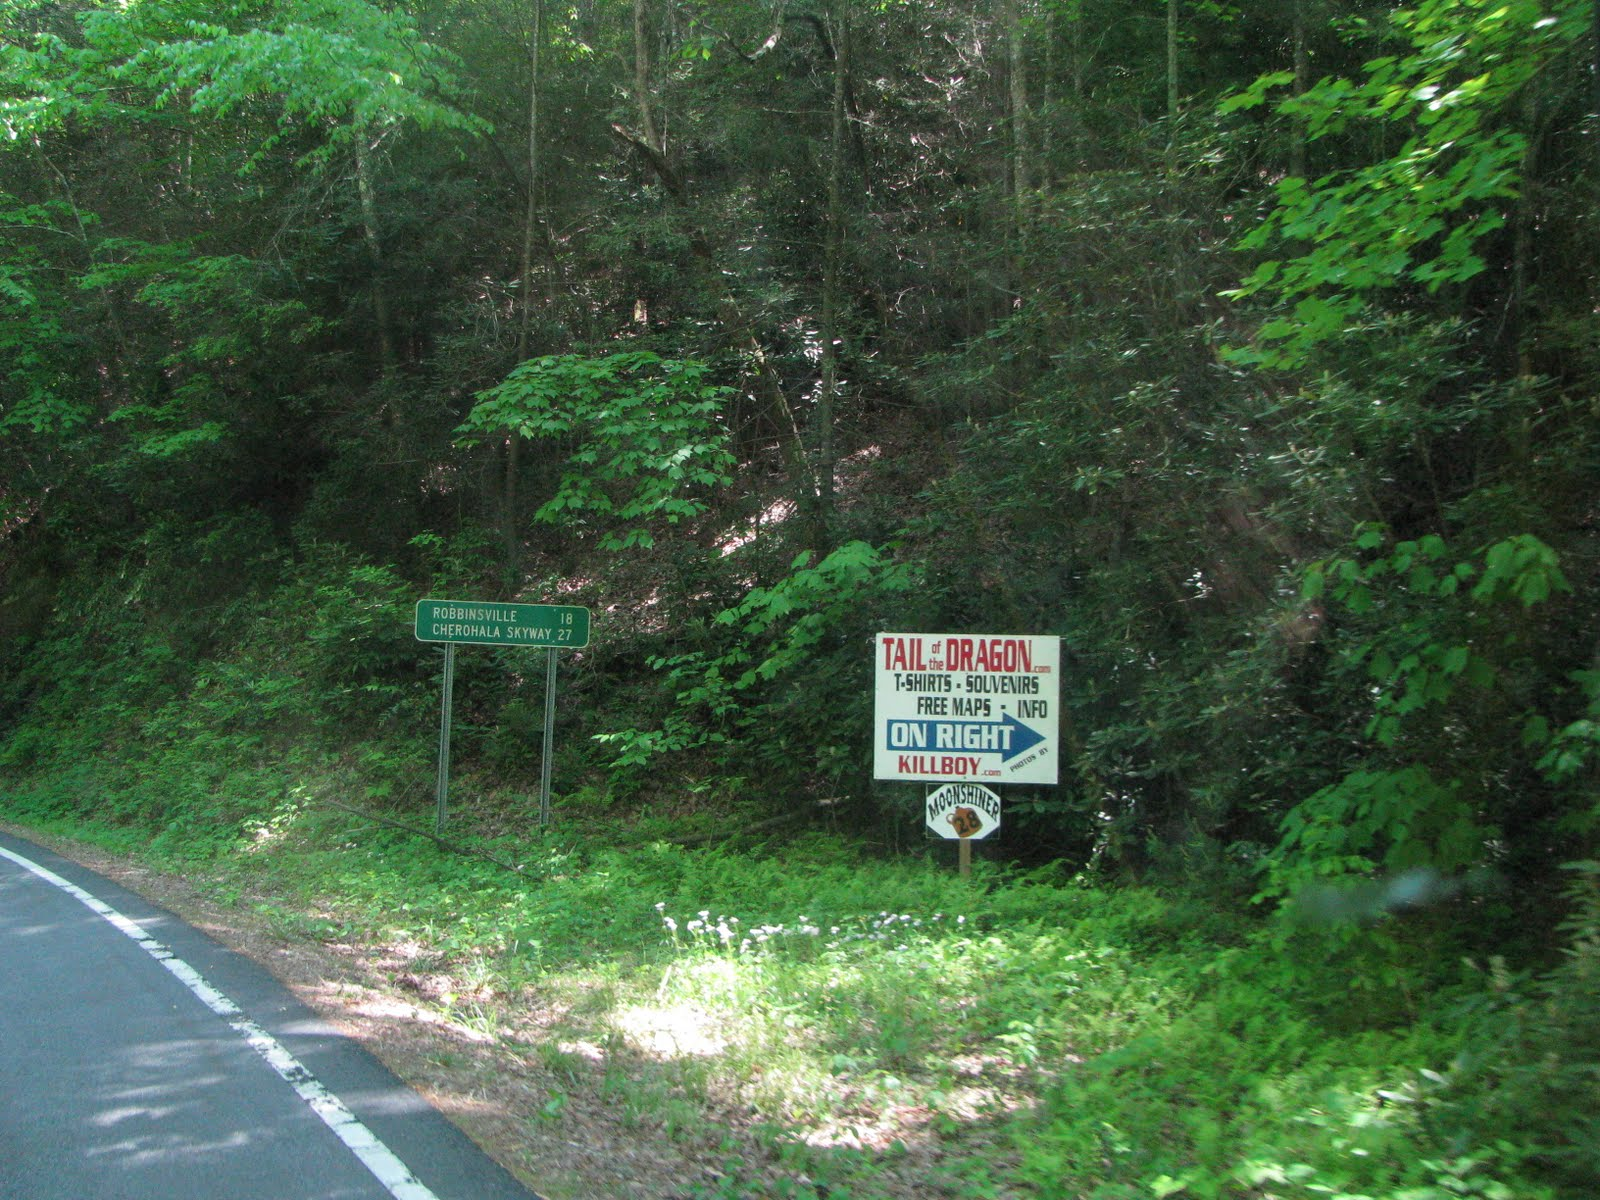 we ran route 28 for a short twisty distance and turned off at 19 74 which took us into route 441 and cherokee nc